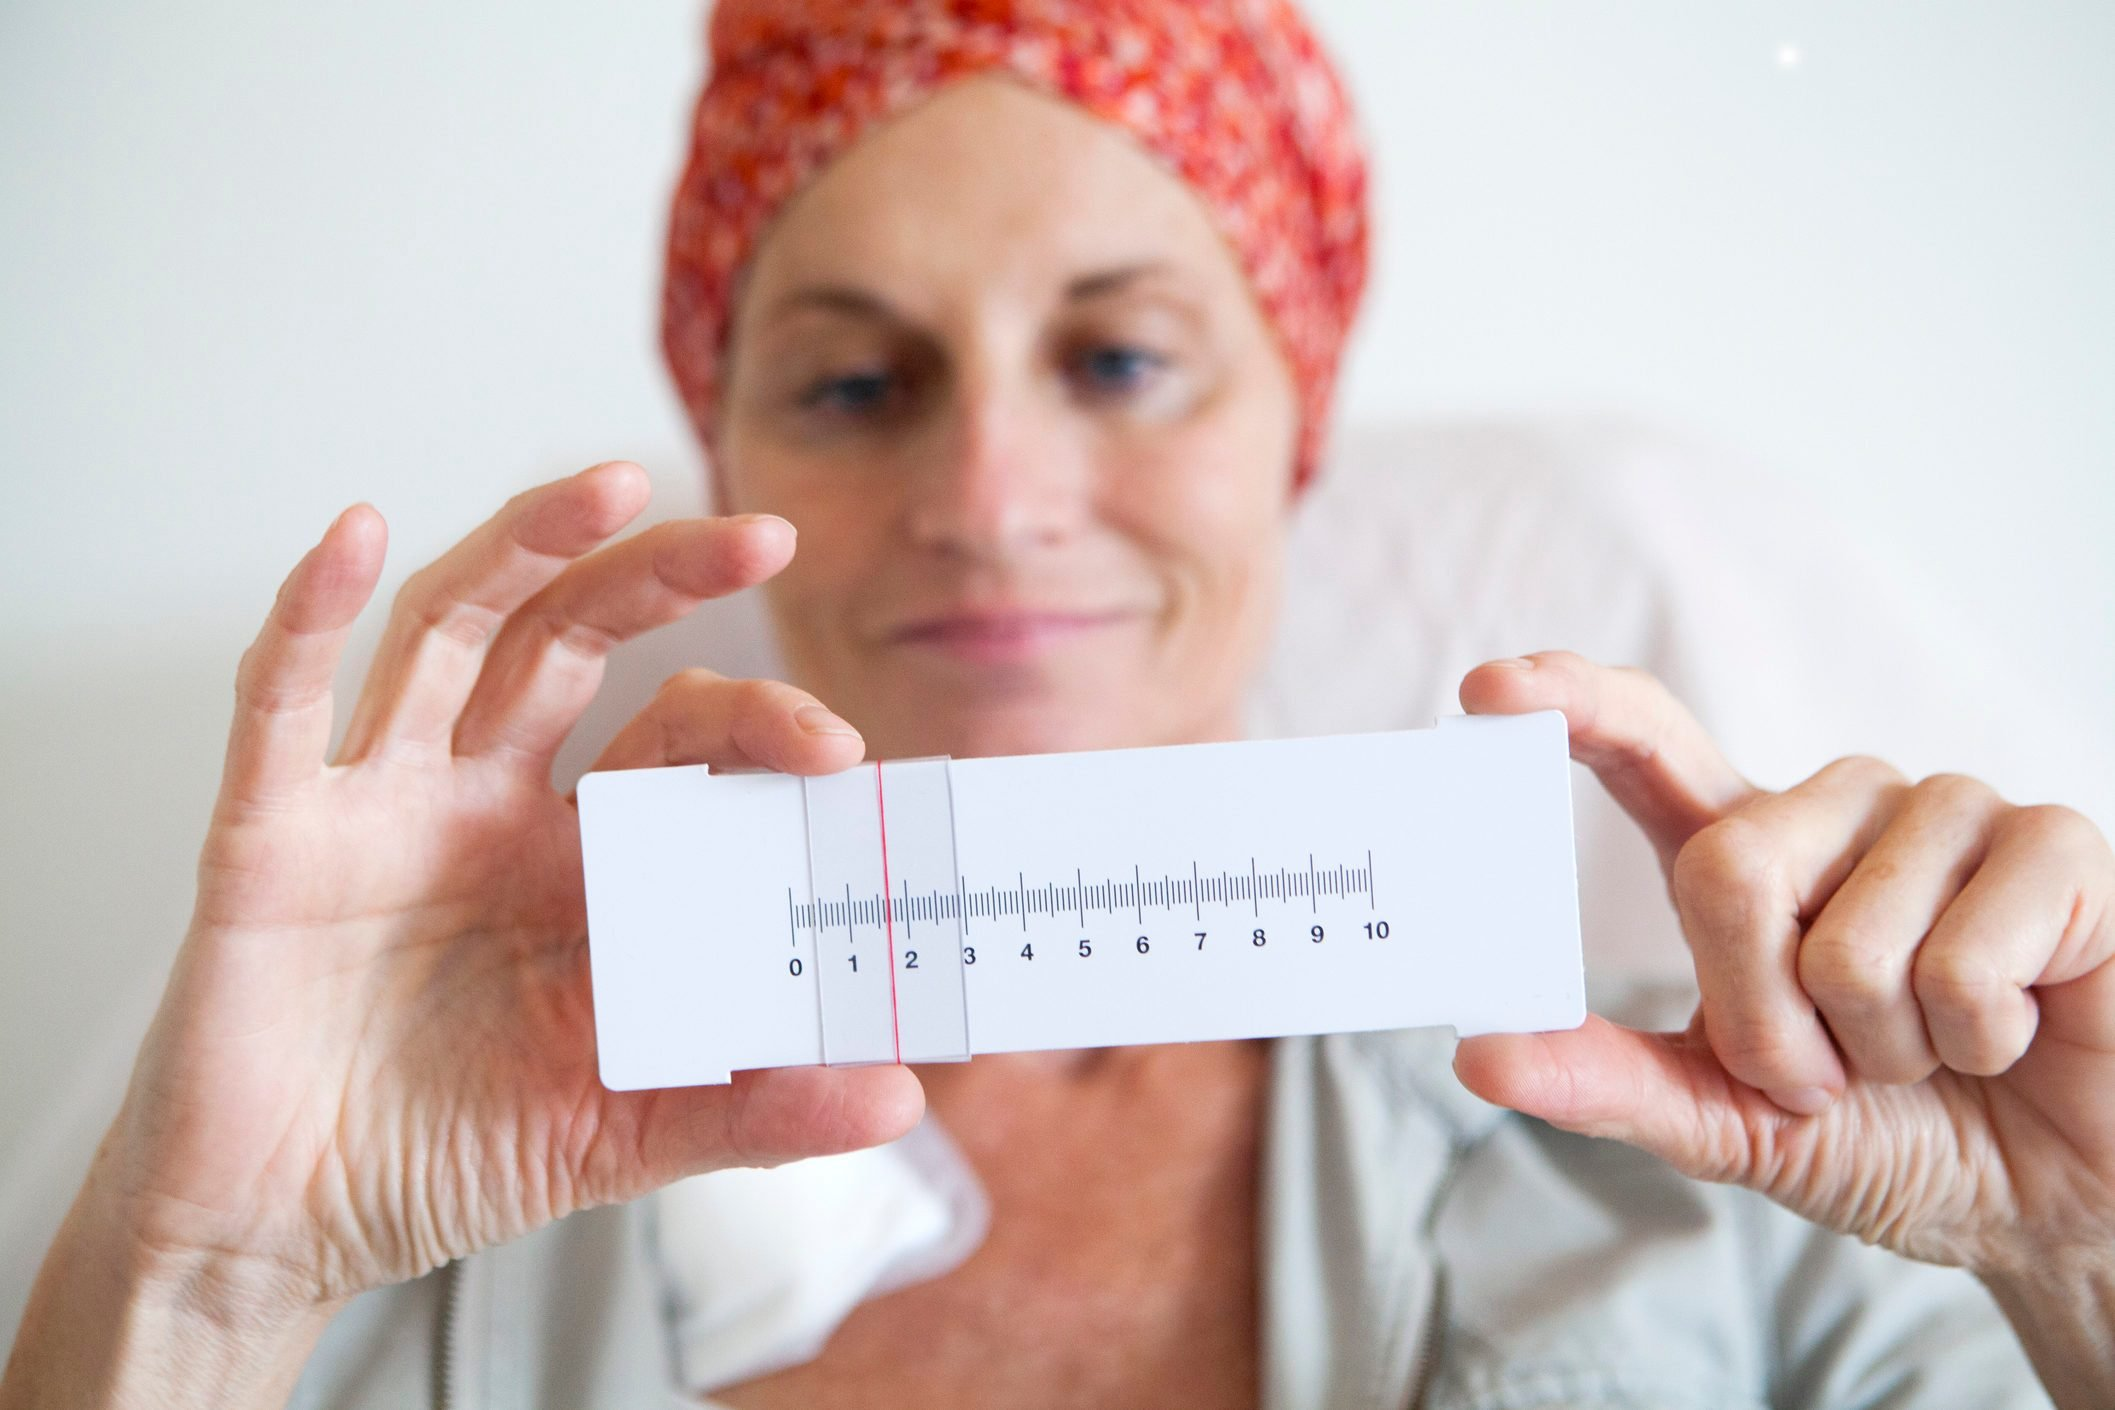 chemotherapy patient holding pain scale